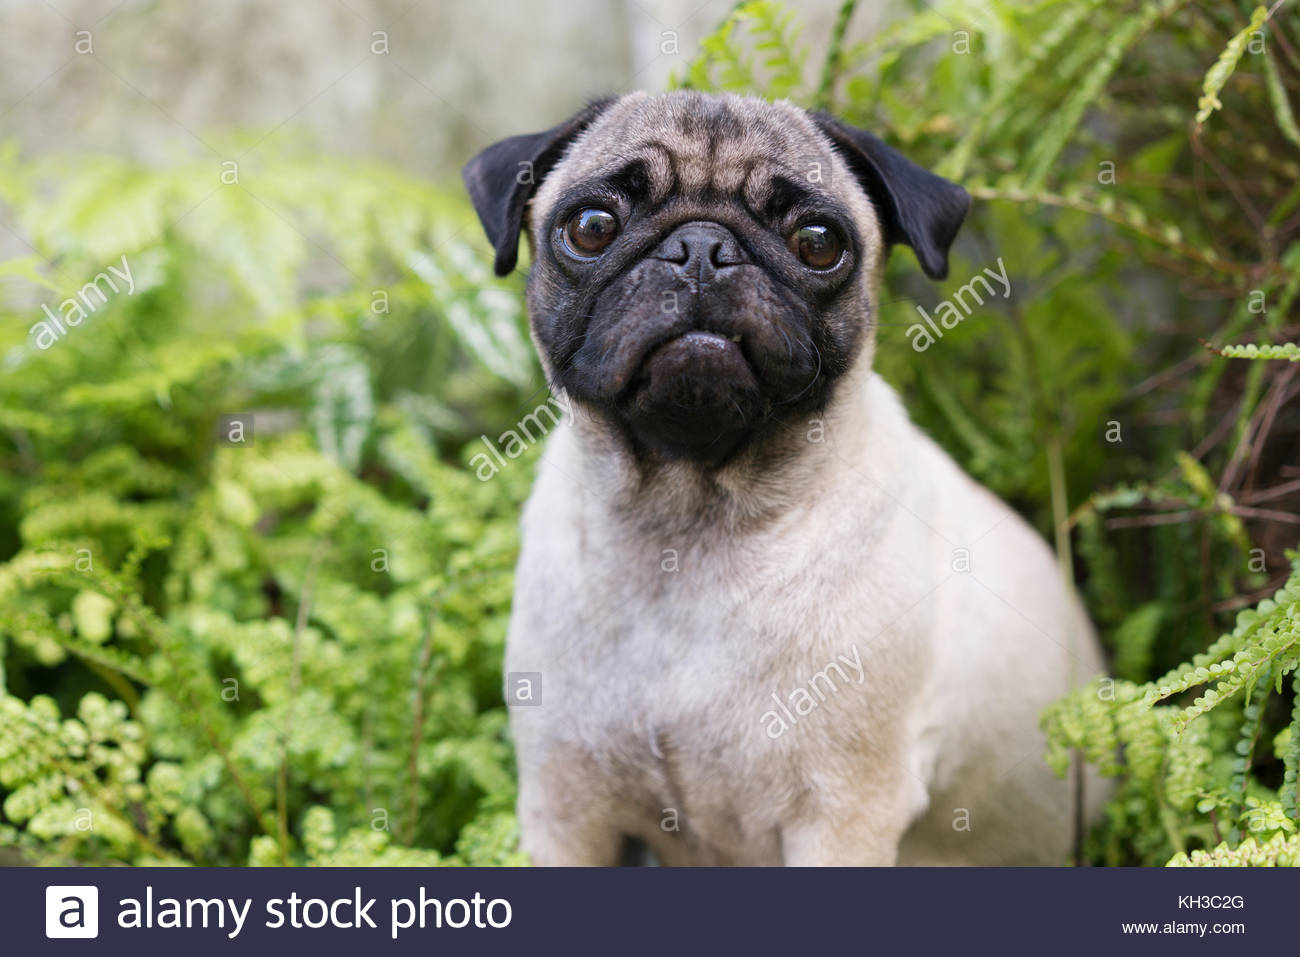 Portrait of a pug dog in the garden - Stock Image